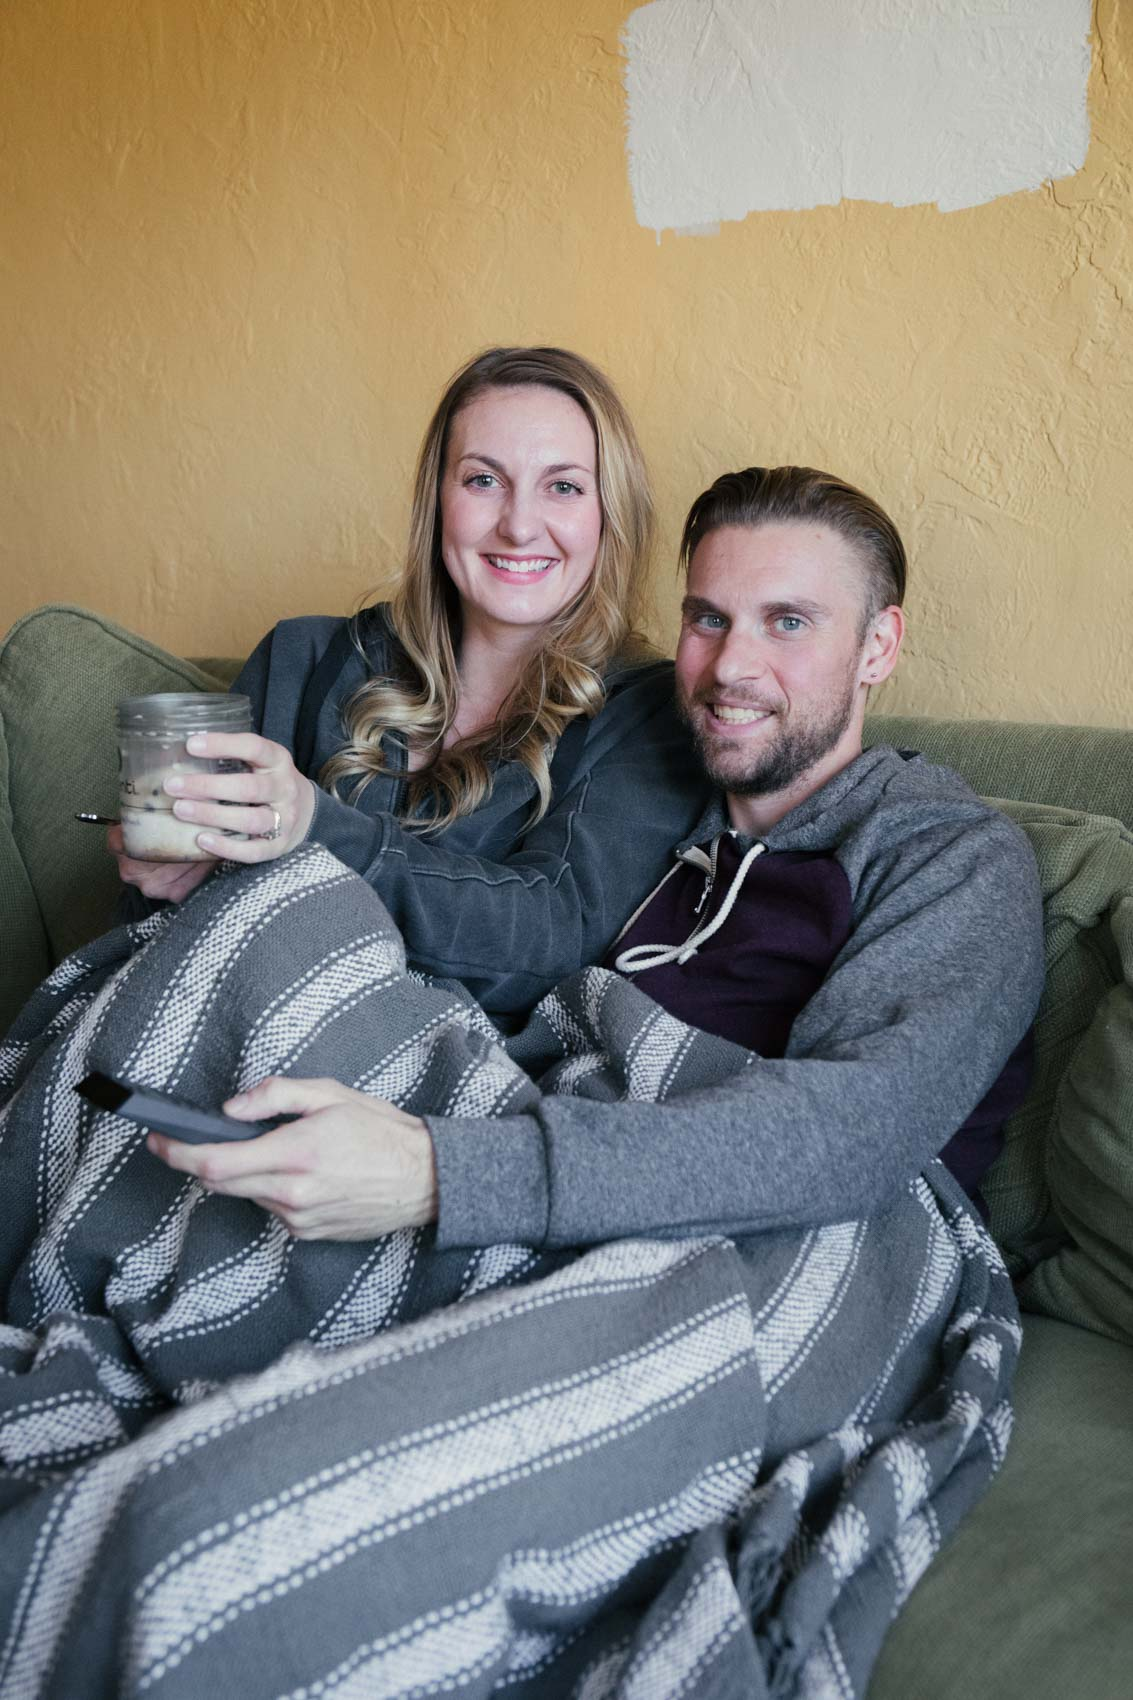 Lifestyle blogger Allyn Lewis snuggled up on the couch for movie night with husband Shaun Novak holding the Xfinity Voice Remote and ice cream